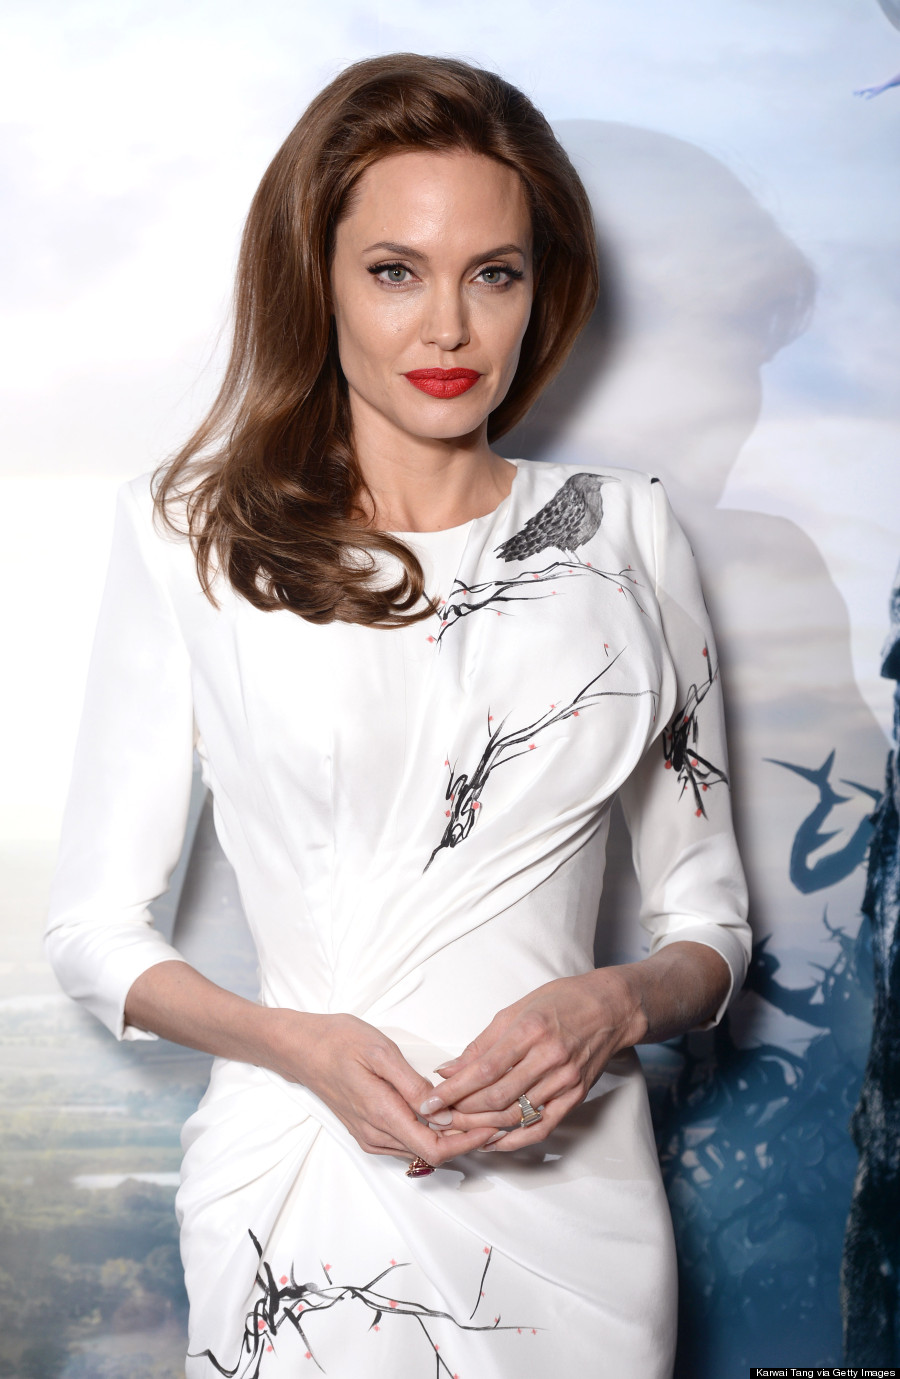 Angelina Jolie Look Using All Drugstore Makeup: Angelina Jolie Is A Vision In White Body-Hugging Versace Dress